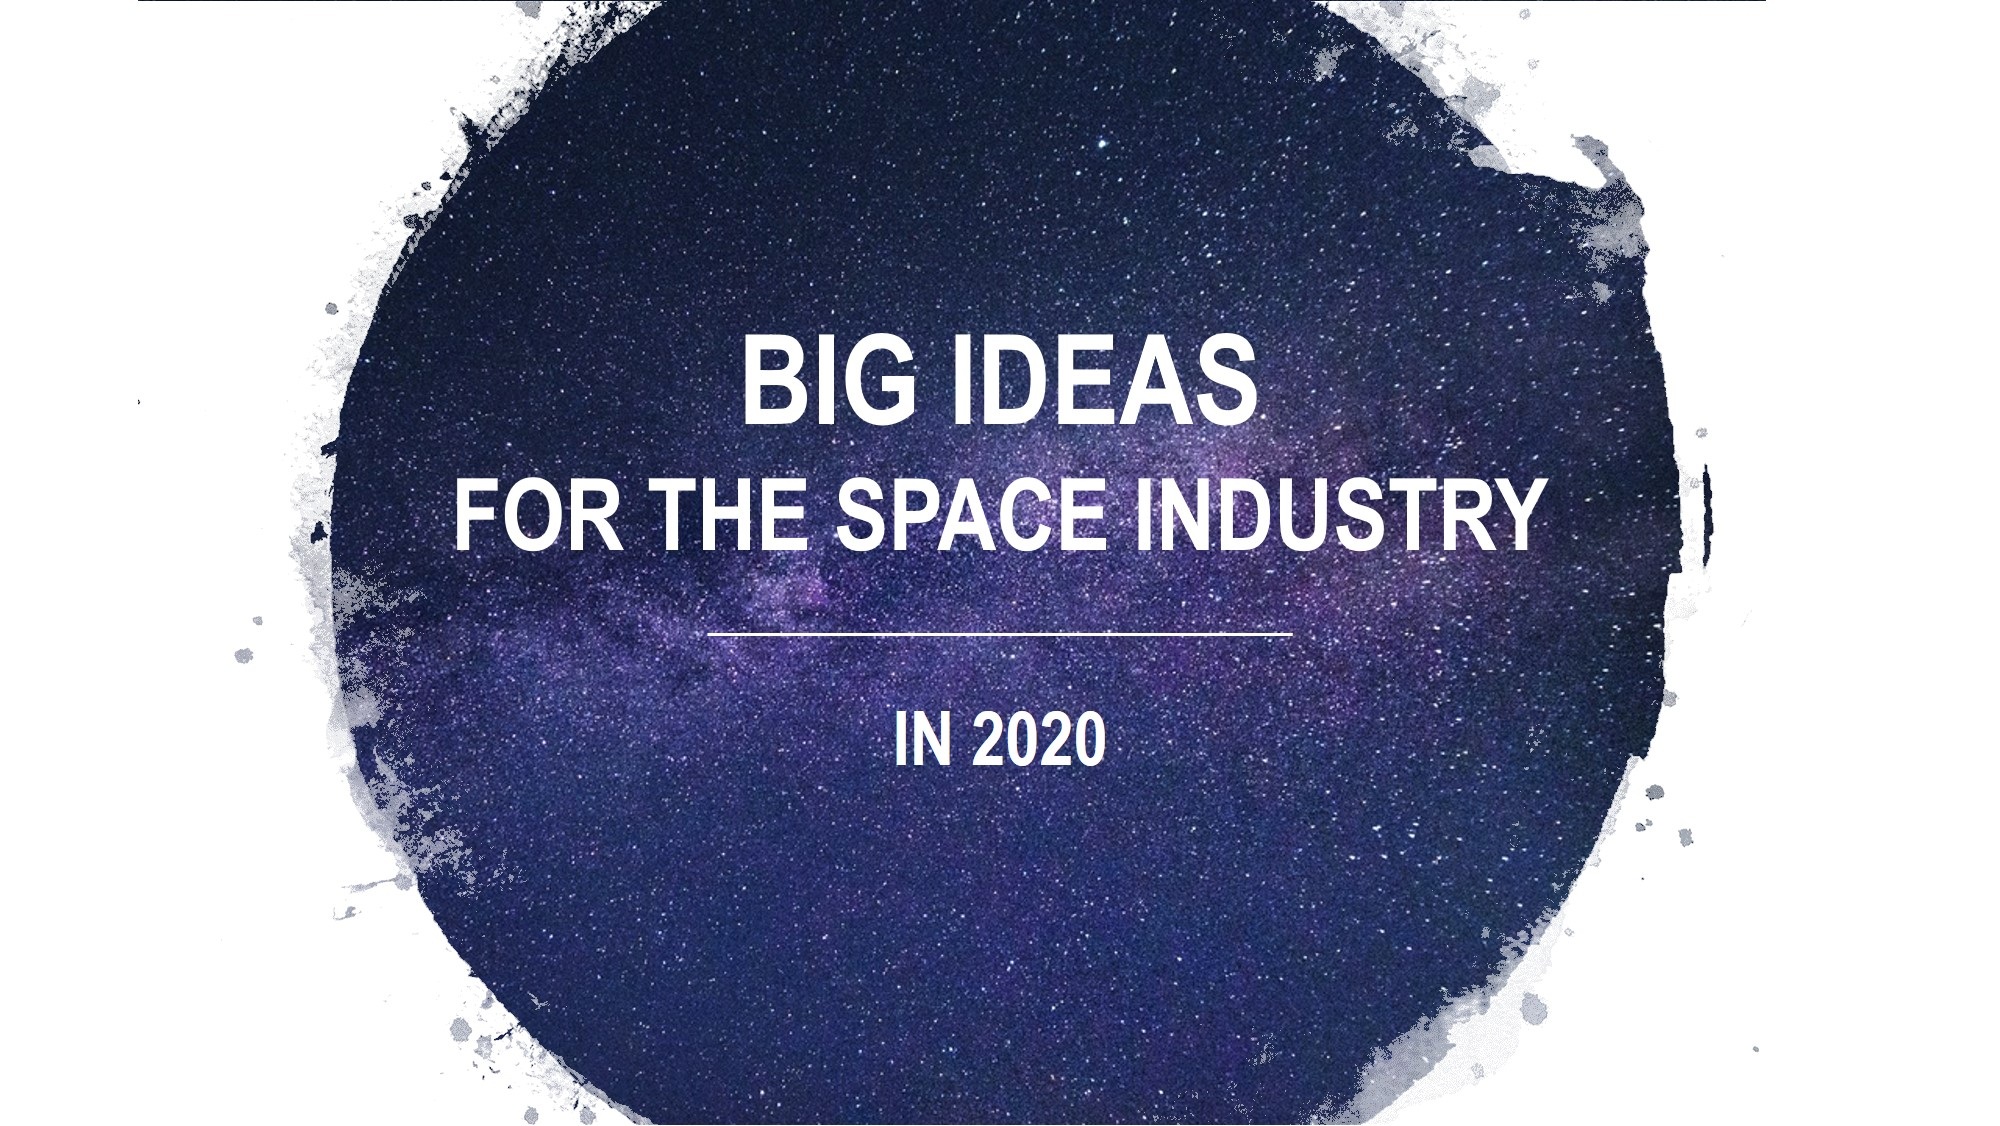 Big ideas for the space industry in 2020